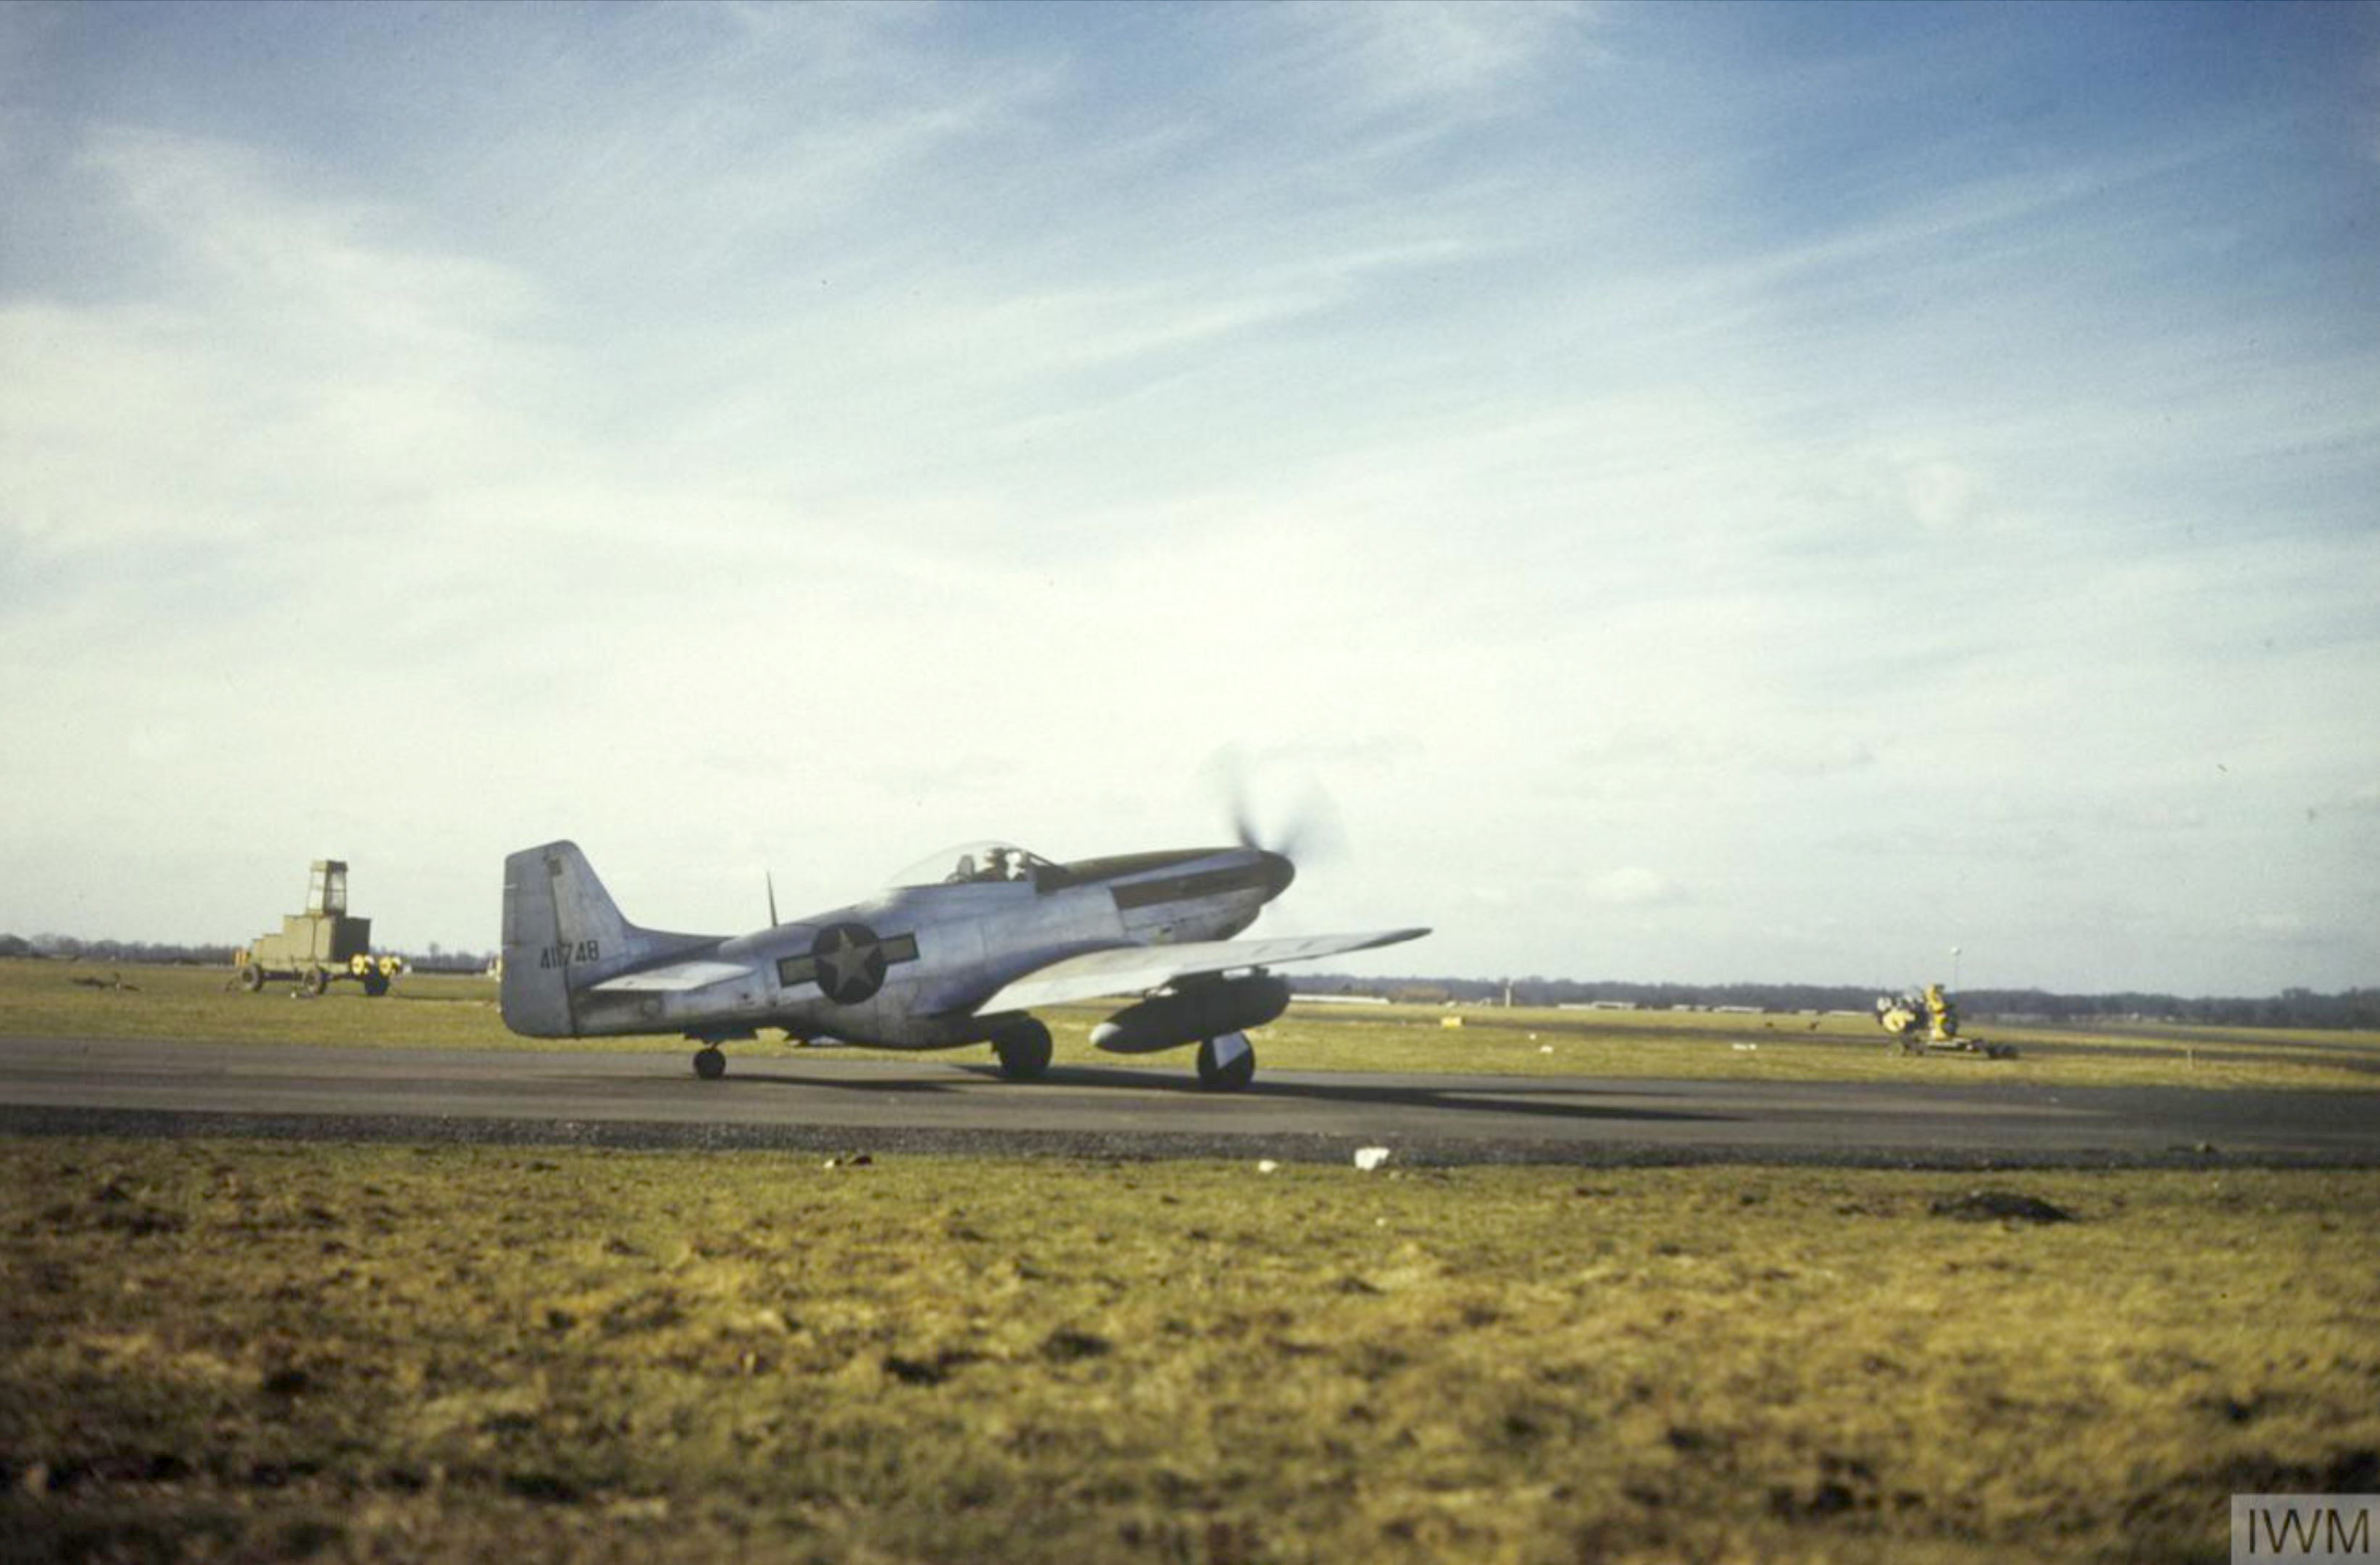 P 51D Mustang USAAF 41 1748 7PG13PS taking off Mount Farm IWM FRE5388